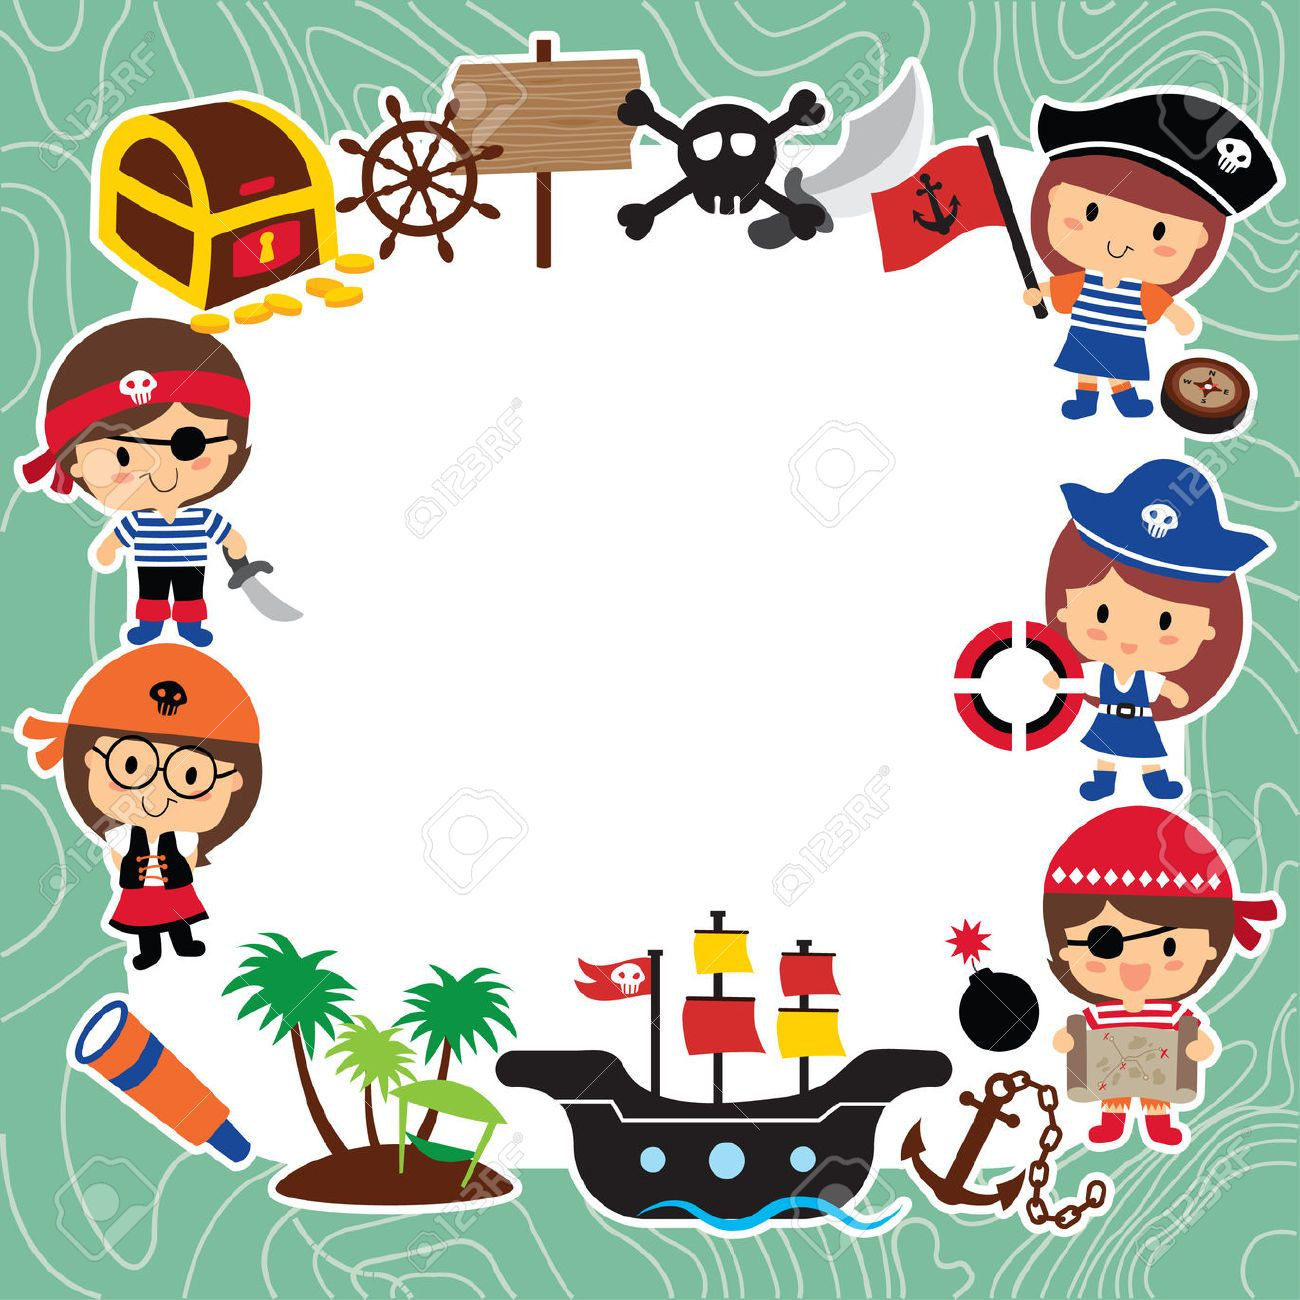 32649556 Pirates Kids Layout Design Stock Vector